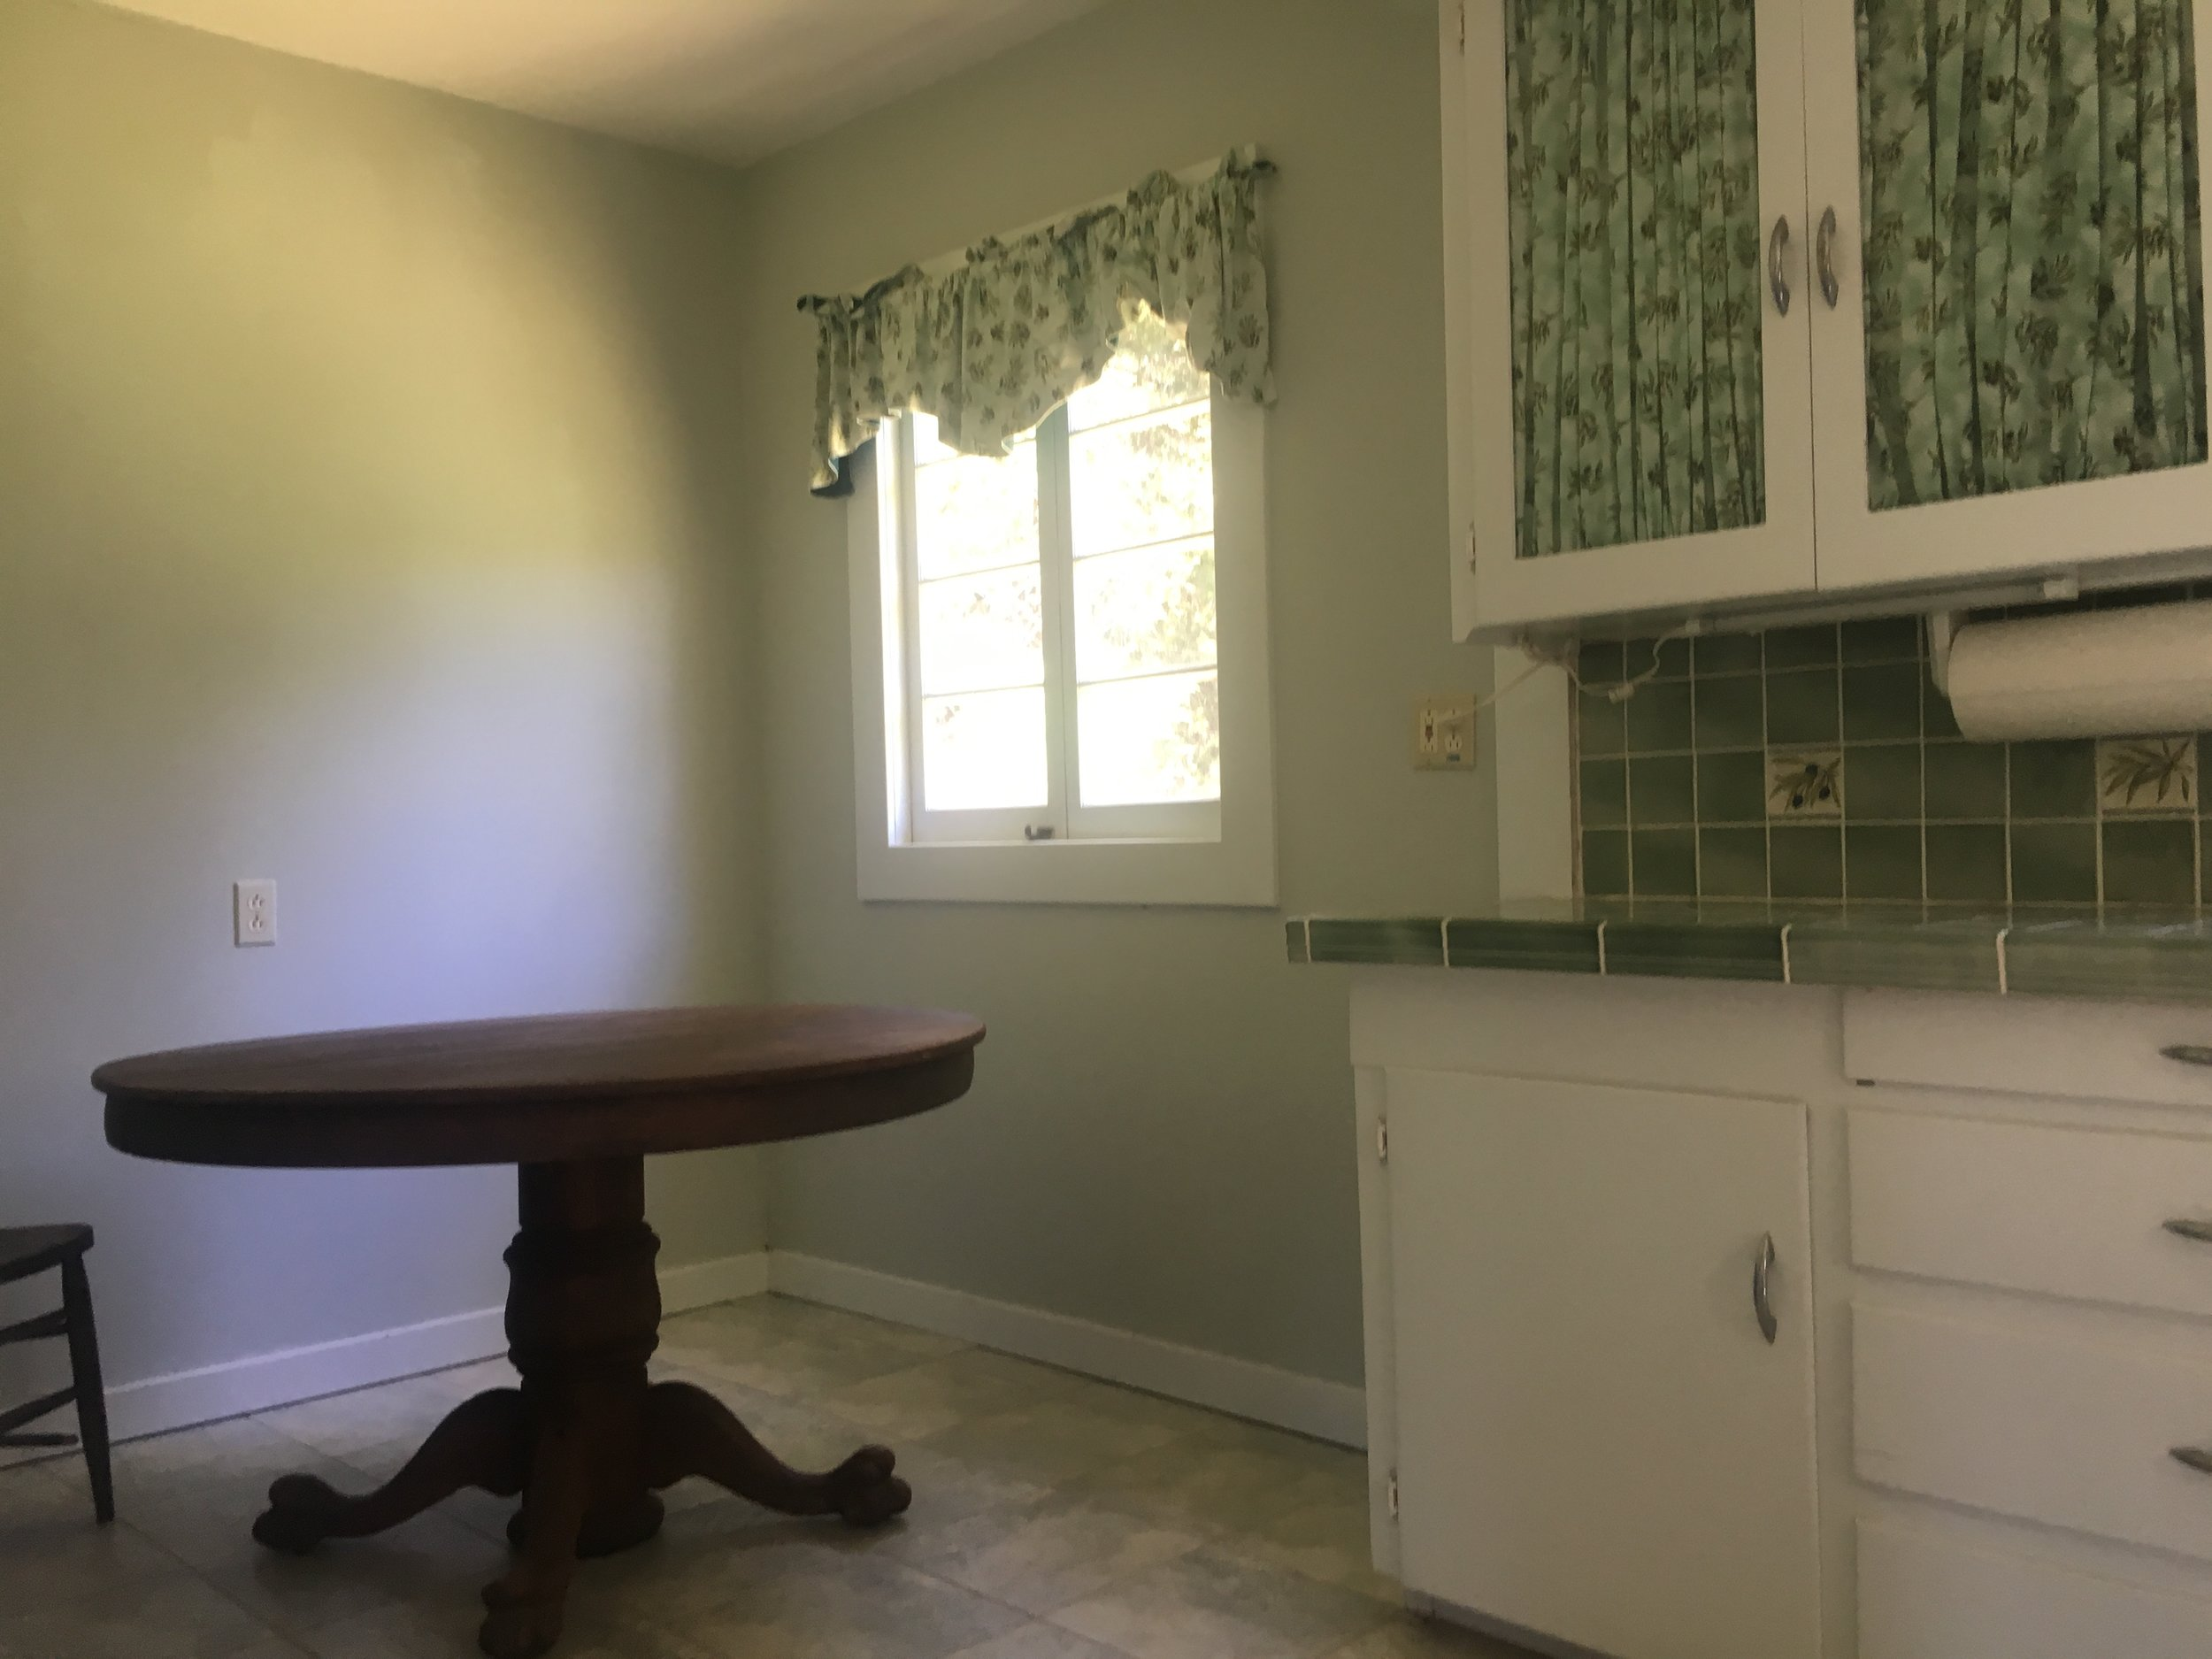 Kitchen dinning area in cabin in Yorkville for sale.